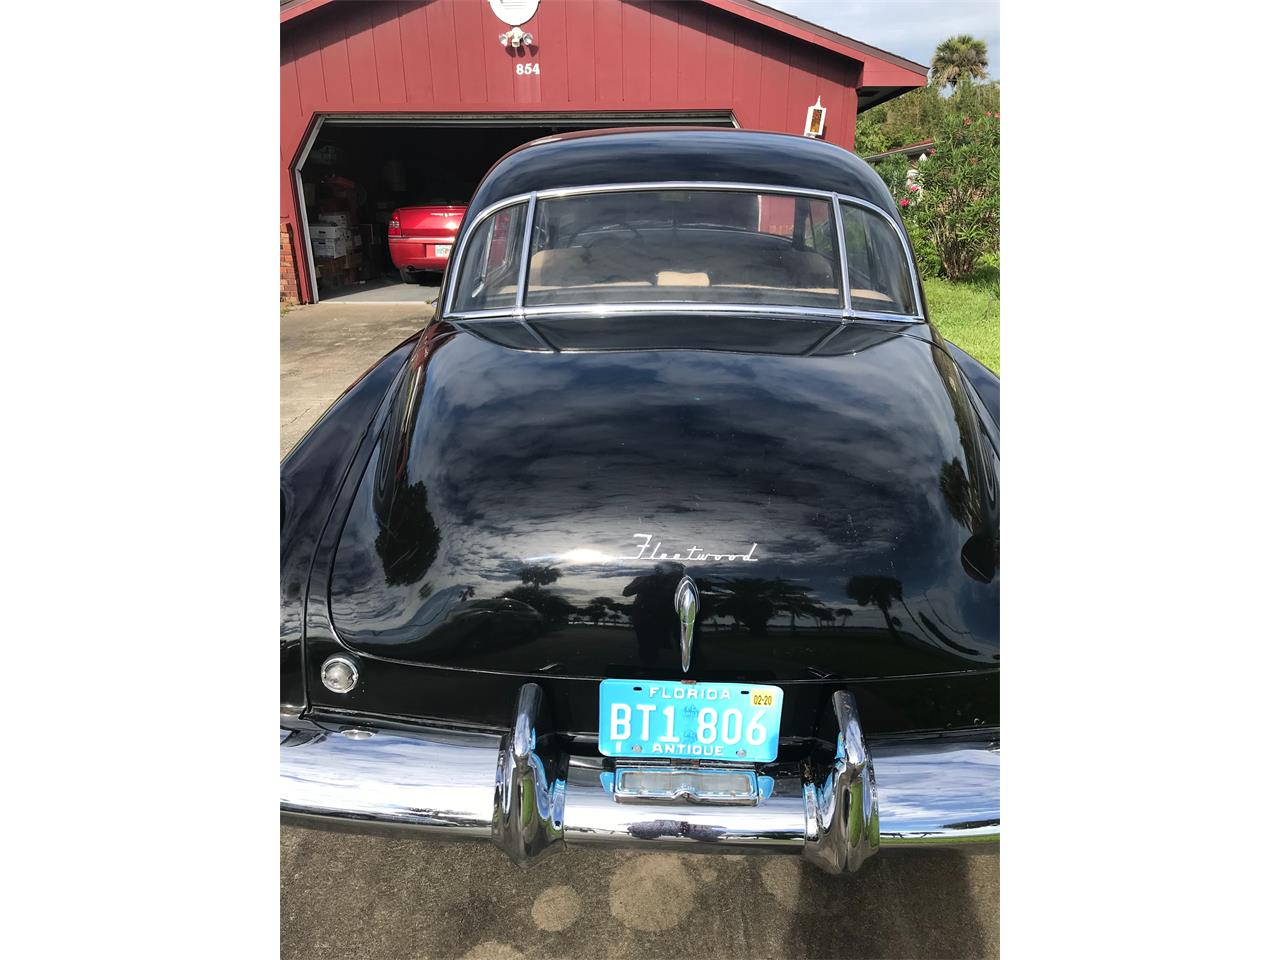 1949 Cadillac 4-Dr Sedan for sale in Land O Lakes, FL – photo 7